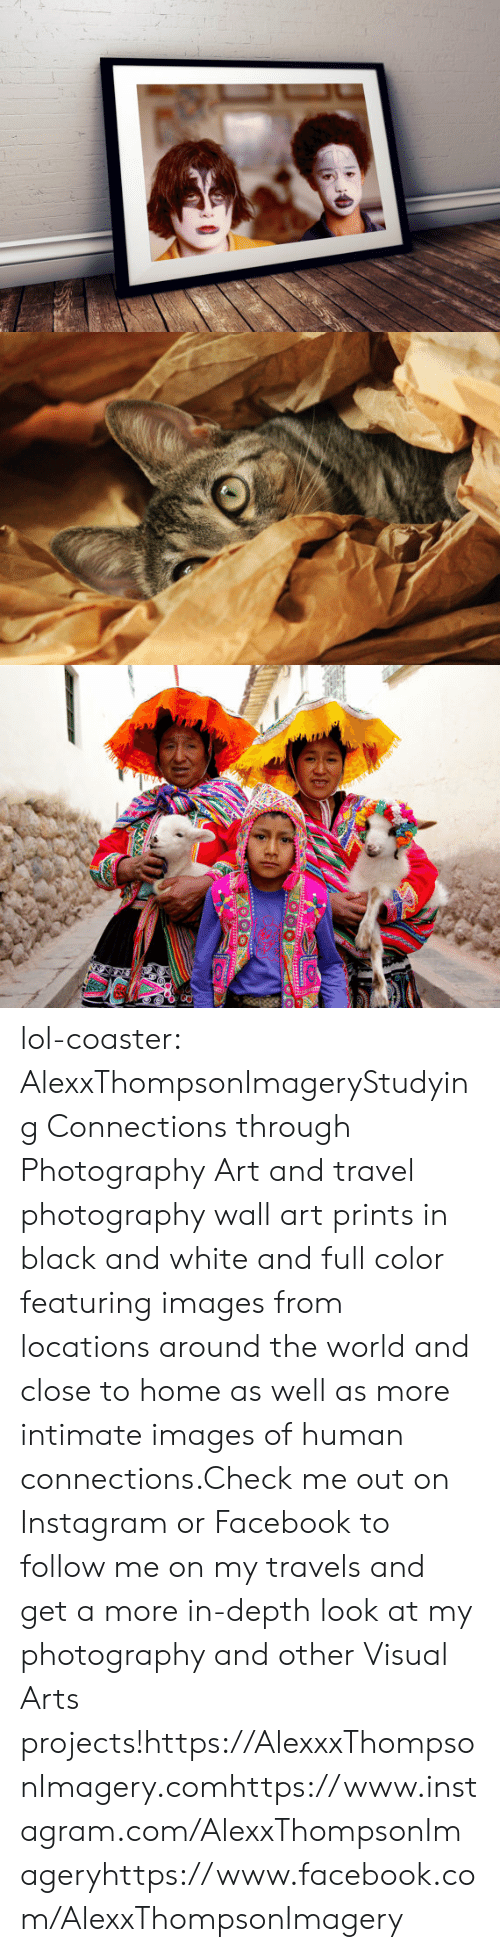 Facebook, Instagram, and Lol: lol-coaster:    AlexxThompsonImageryStudying Connections through Photography    Art and travel photography wall art prints in black and white and full color featuring images from locations around the world and close to home as well as more intimate images of human connections.Check me out on Instagram or Facebook to follow me on my travels and get a more in-depth look at my photography and other Visual Arts projects!https://AlexxxThompsonImagery.comhttps://www.instagram.com/AlexxThompsonImageryhttps://www.facebook.com/AlexxThompsonImagery